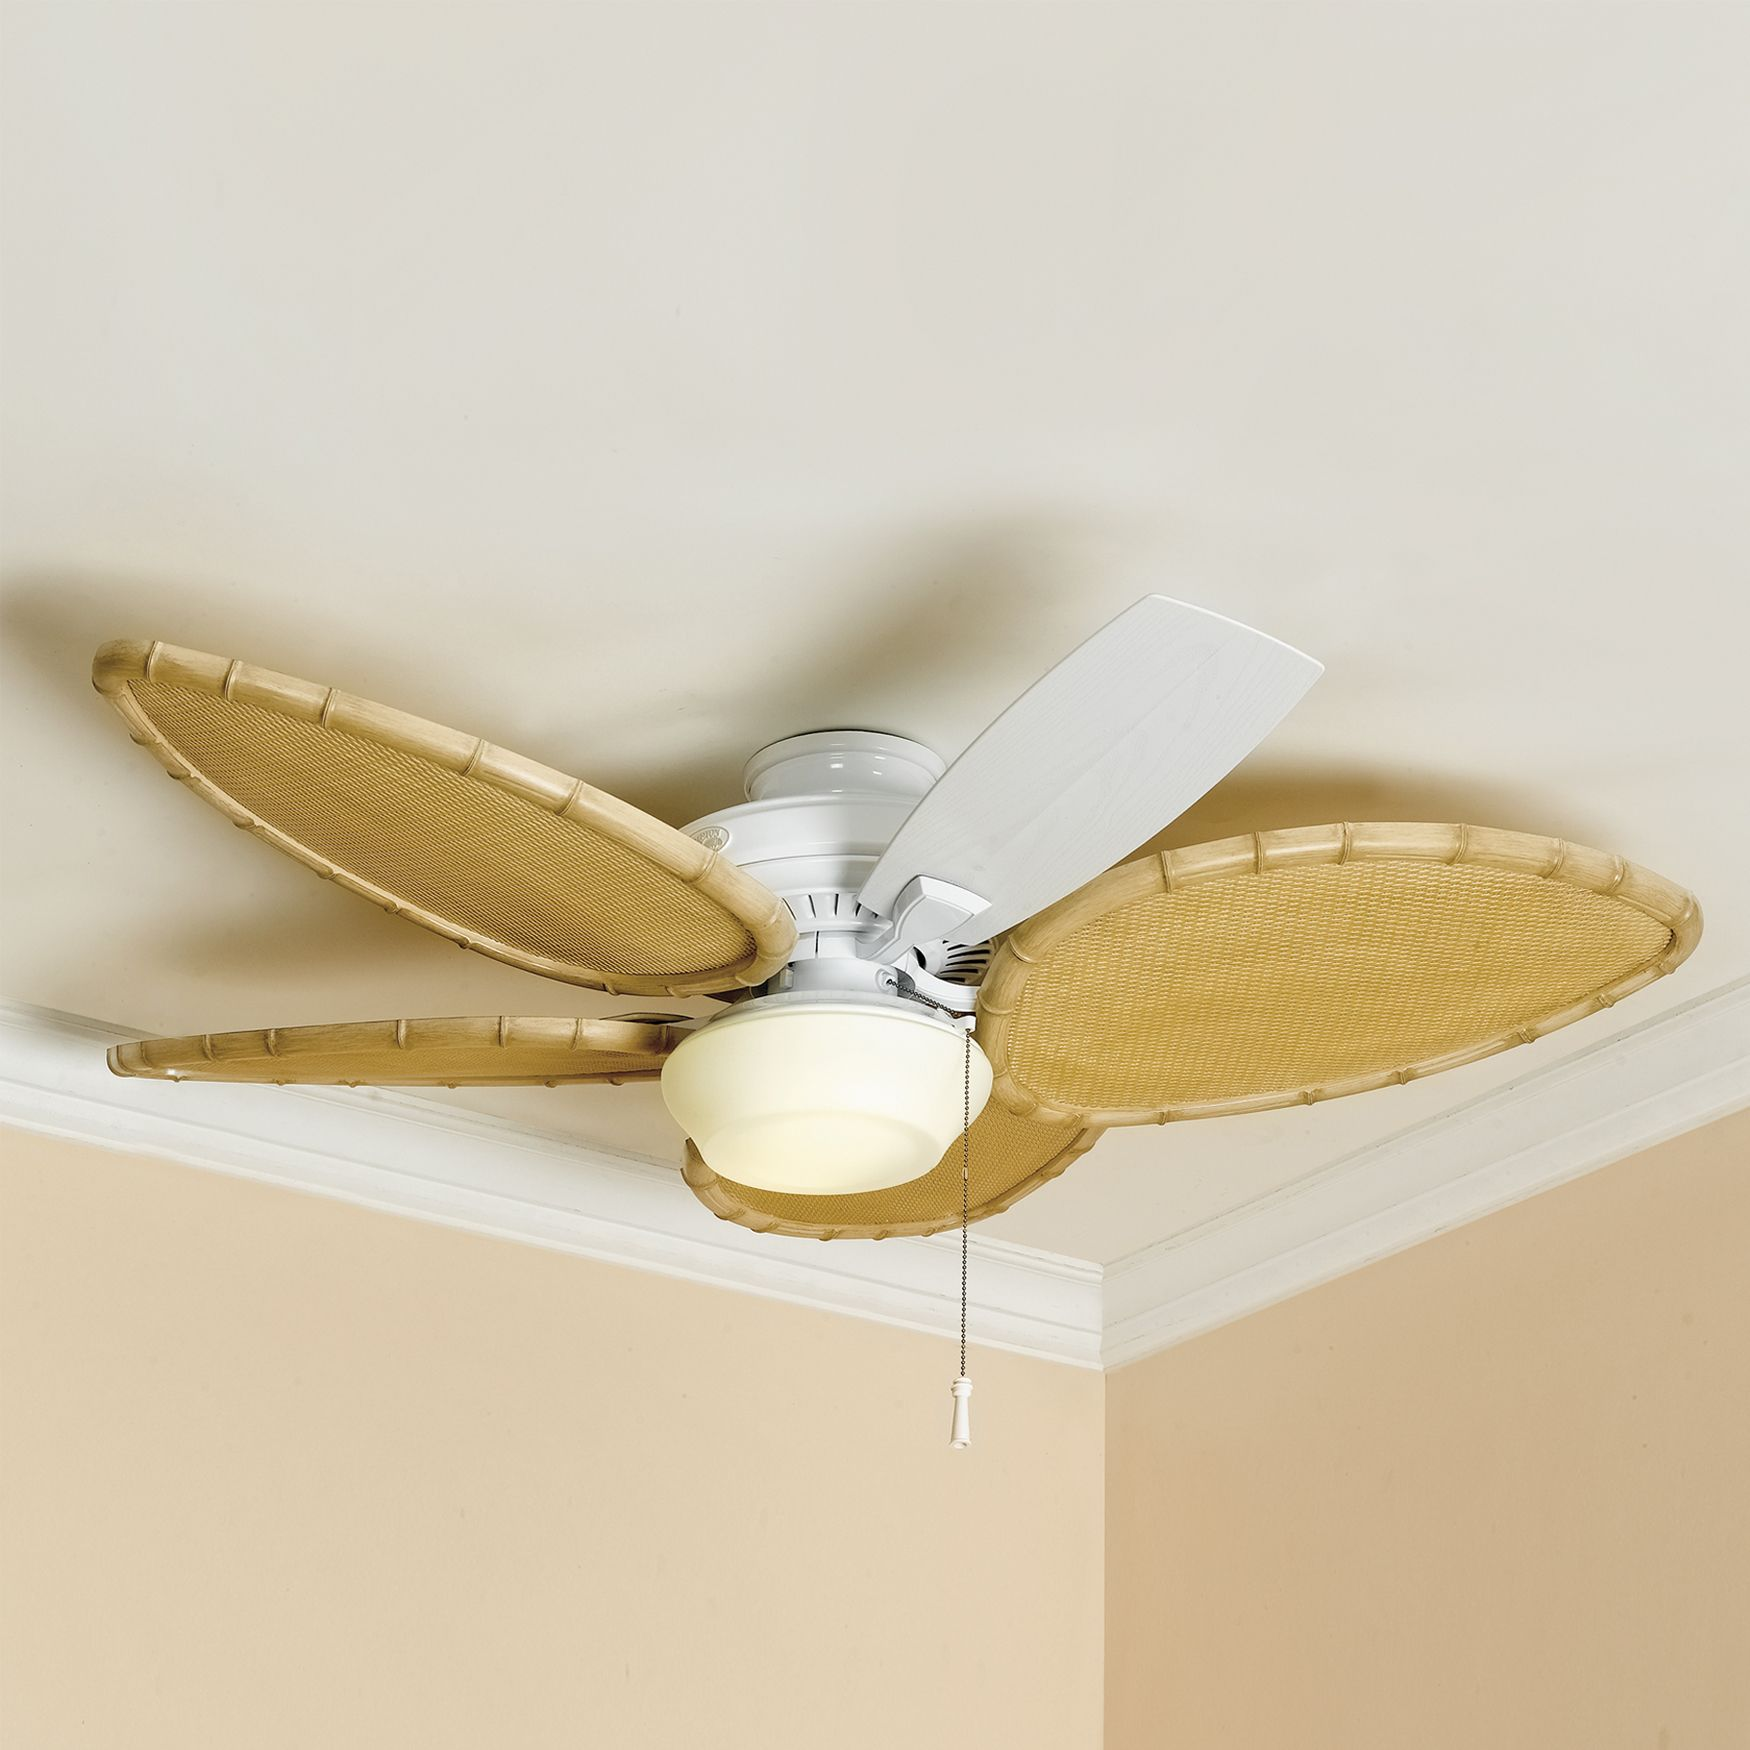 Ceiling Fan Blade Covers Home Decor Brylanehome